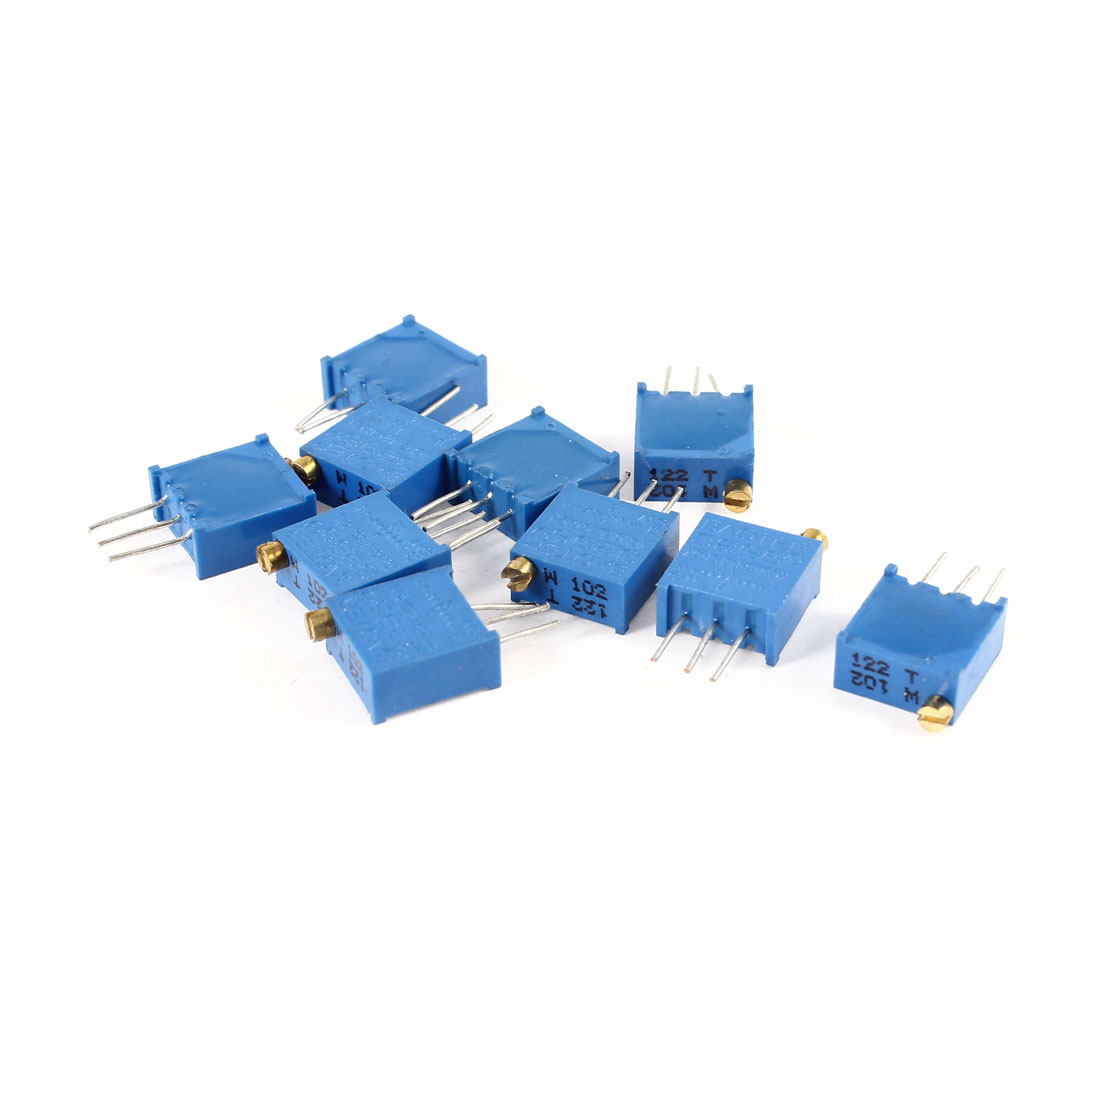 10Pcs 3296W-102 1K ohm 3 Pins High Precision Adjustable Resistor Trim Pot Potentiometer Trimmer